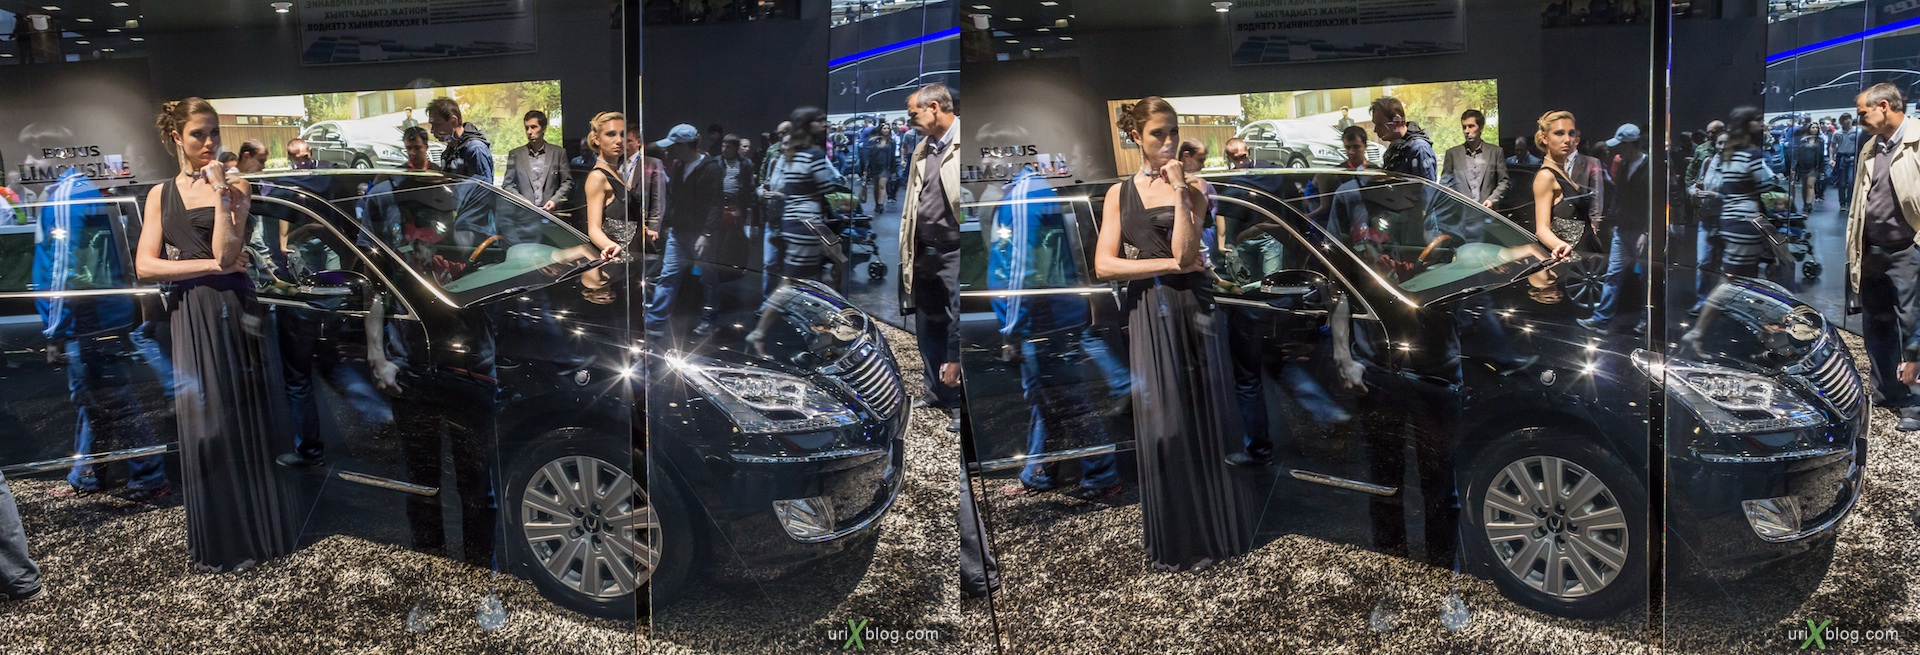 2012, Hyundai Limousine, girl, model, Moscow International Automobile Salon, auto show, 3D, stereo pair, cross-eyed, crossview